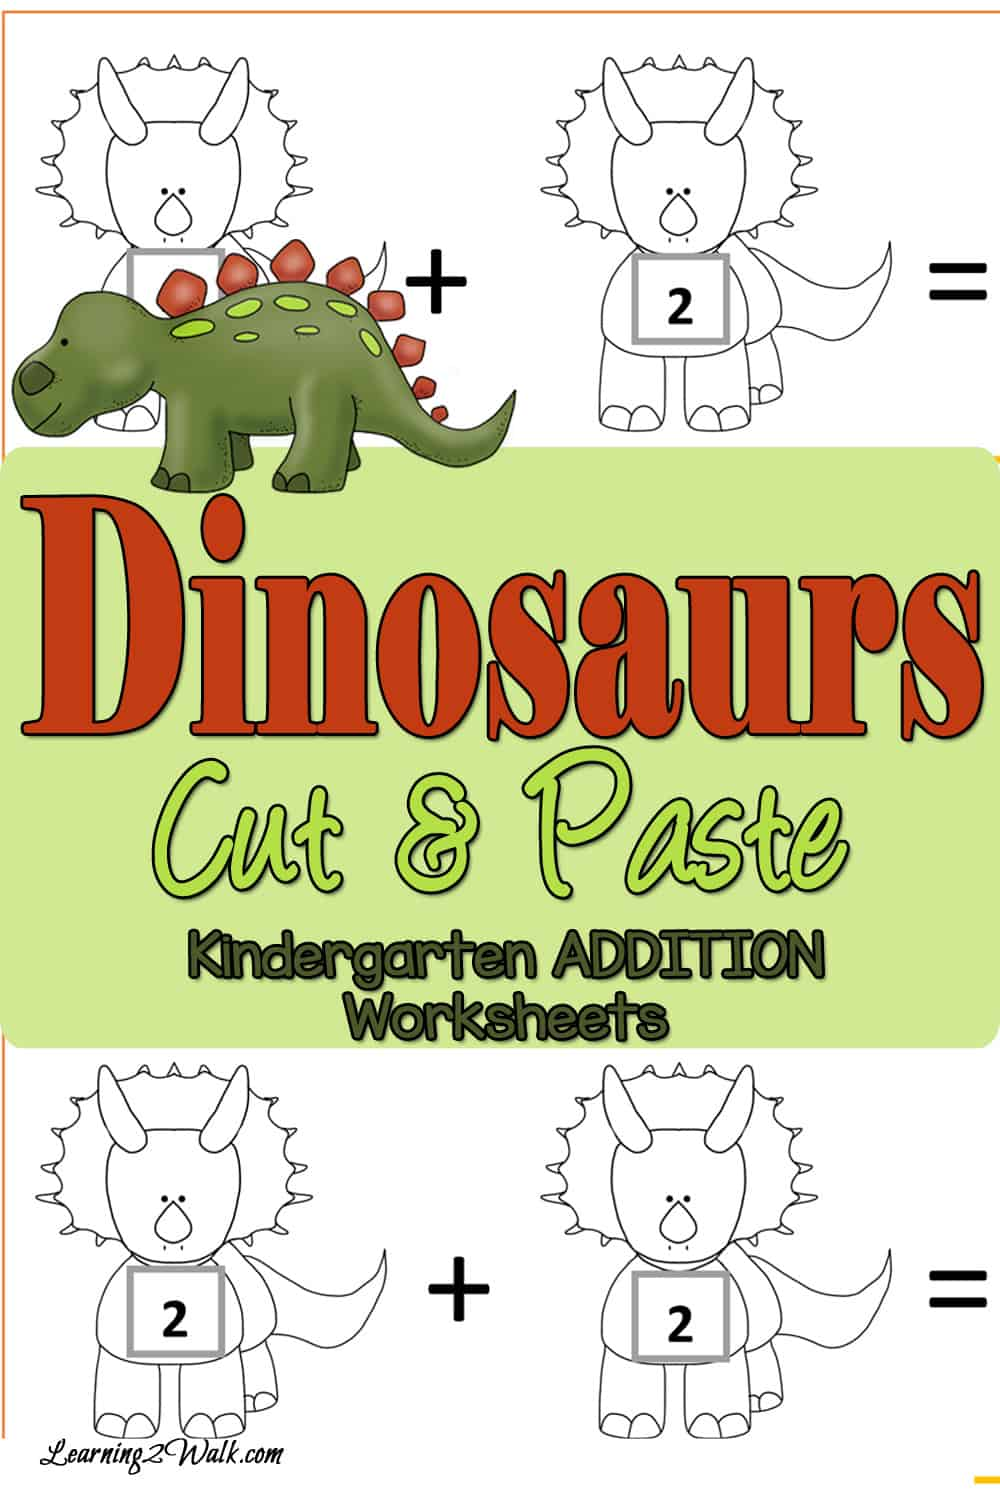 Dinosaurs cut and paste addition worksheets for kindergarten